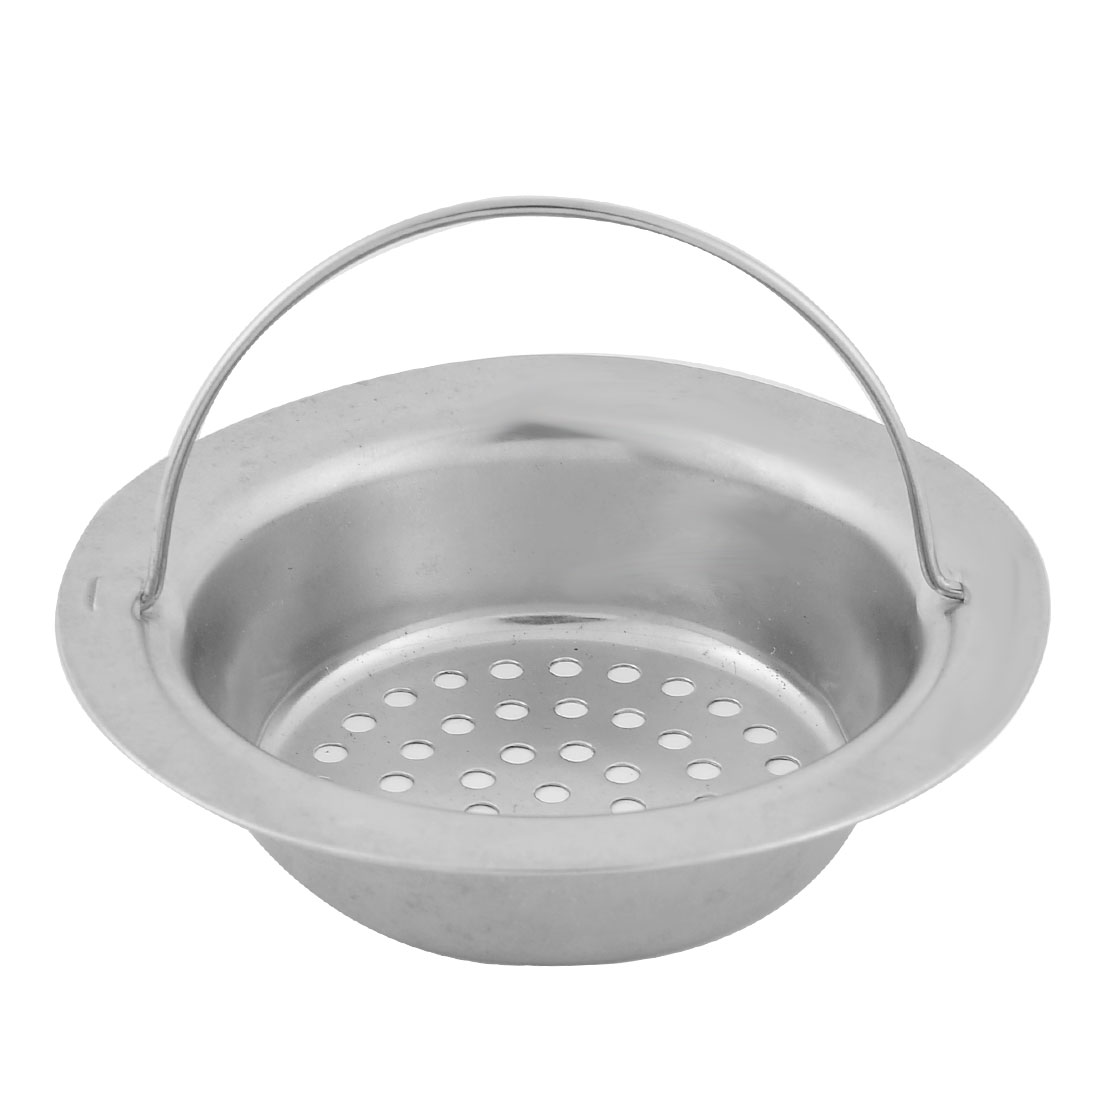 Household Kitchen Stainless Steel Hand-held Basin Sink Strainer Drainer Silver Tone